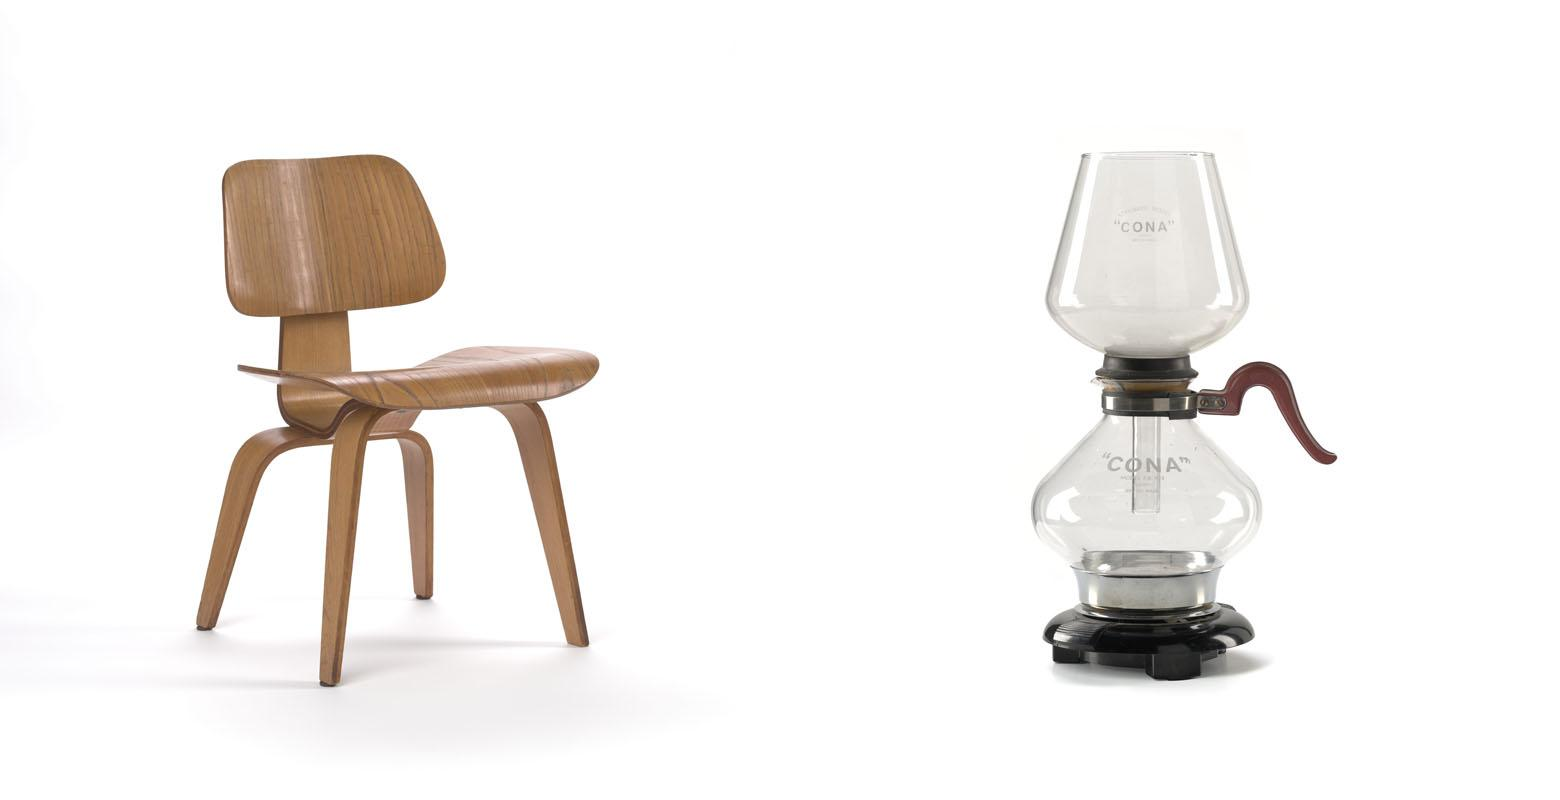 Composite image of a wooden dining chair and glass hourglass-shaped coffee maker